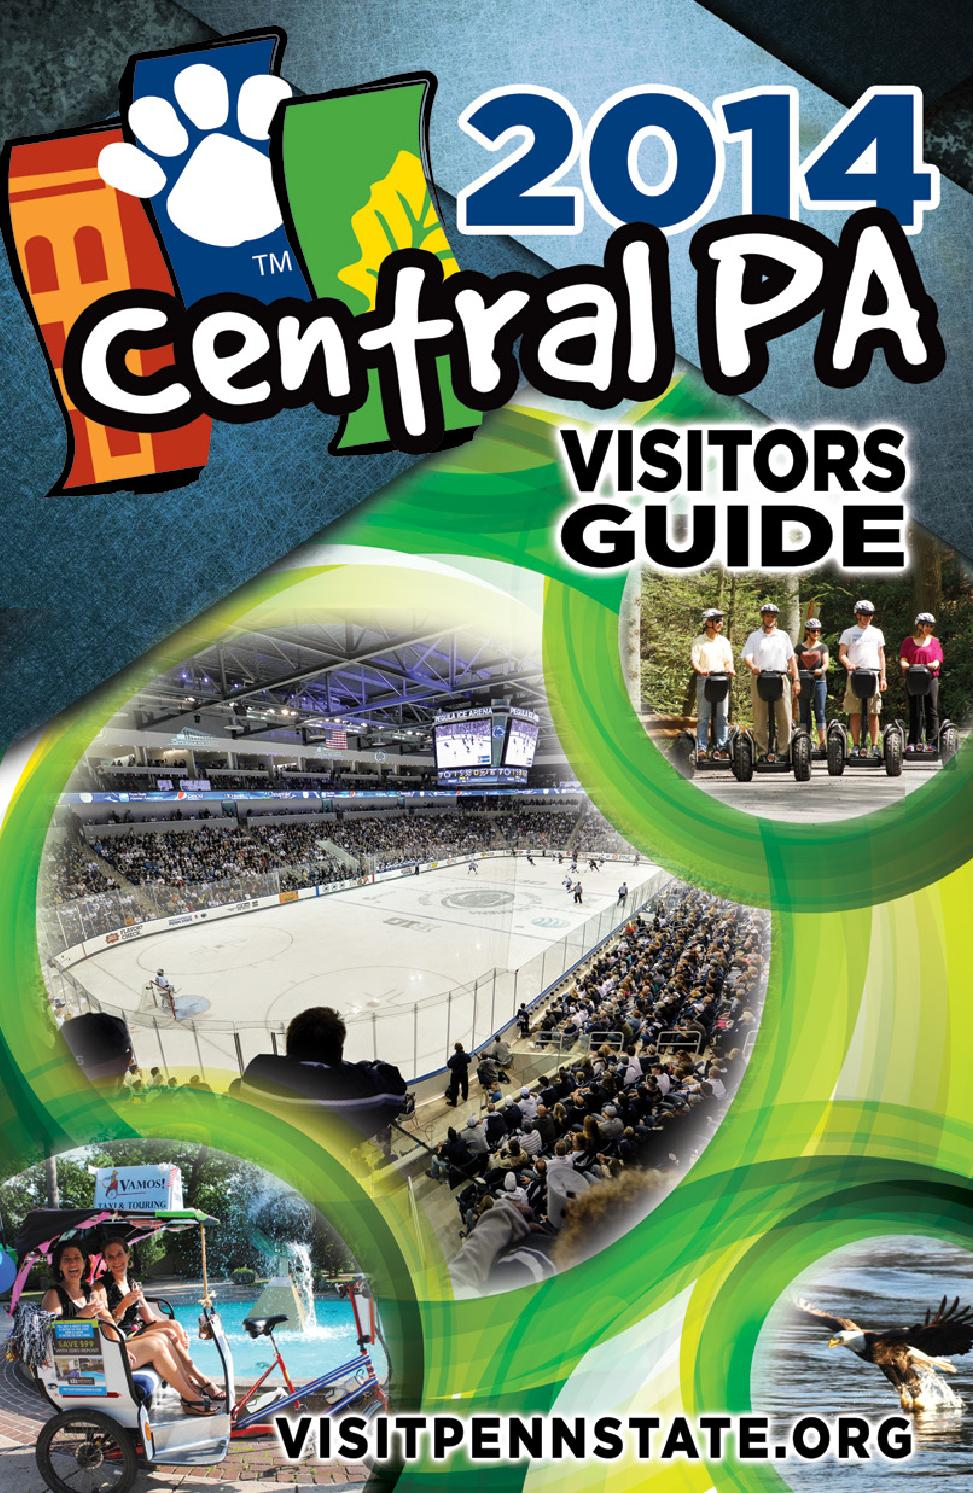 2014 central pa visitors guide visit penn state by central pennsylvania cvb issuu. Black Bedroom Furniture Sets. Home Design Ideas